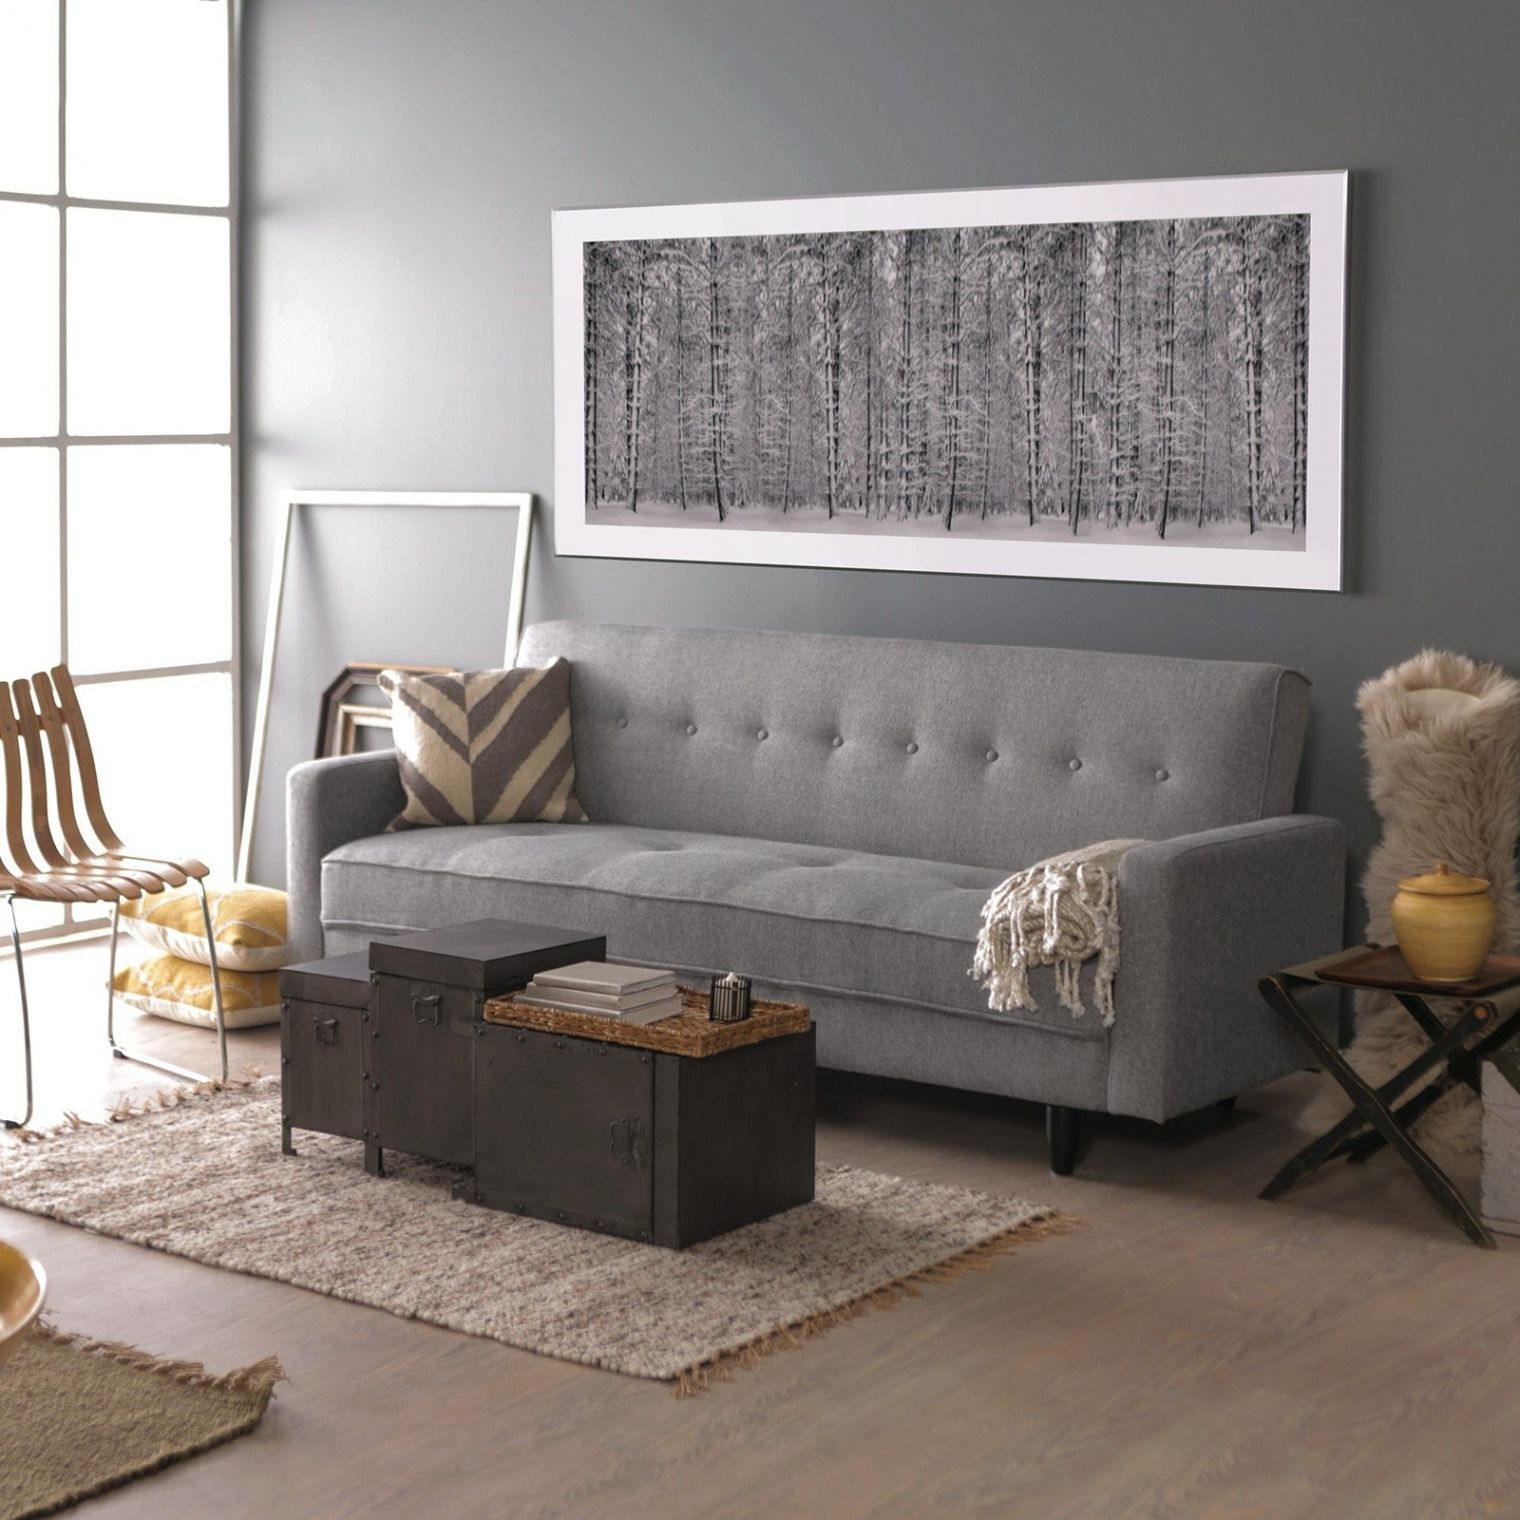 Durable Sofas Awesome Most Durable Couches 21 Sofas And